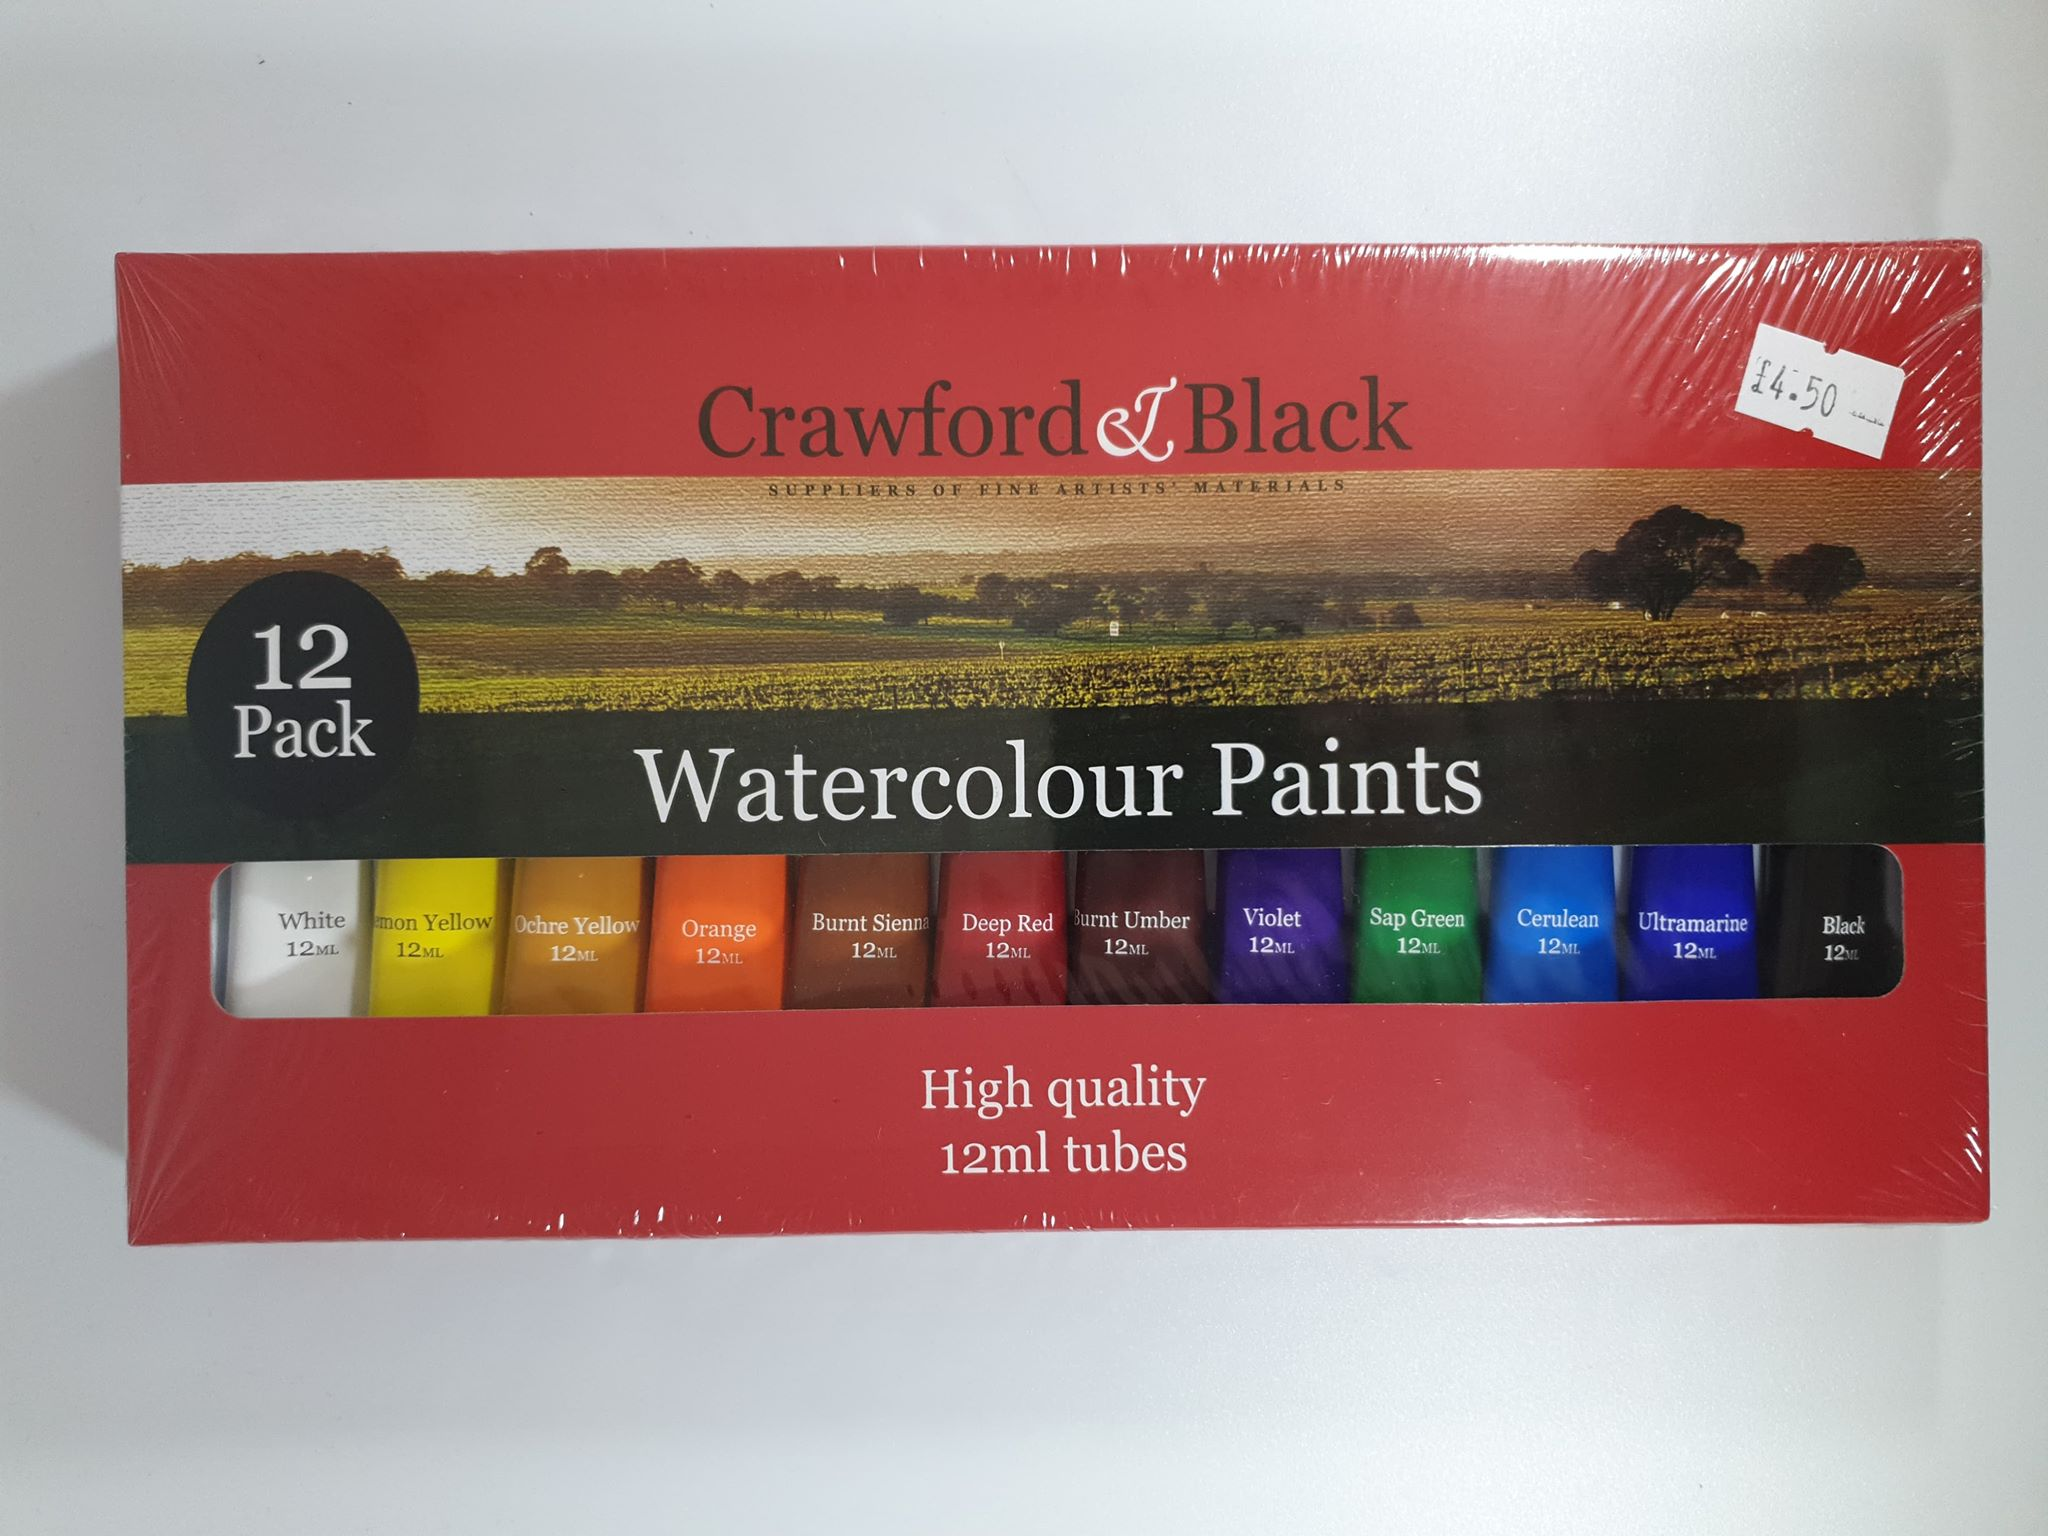 Crawford & Black Watercolour Paints